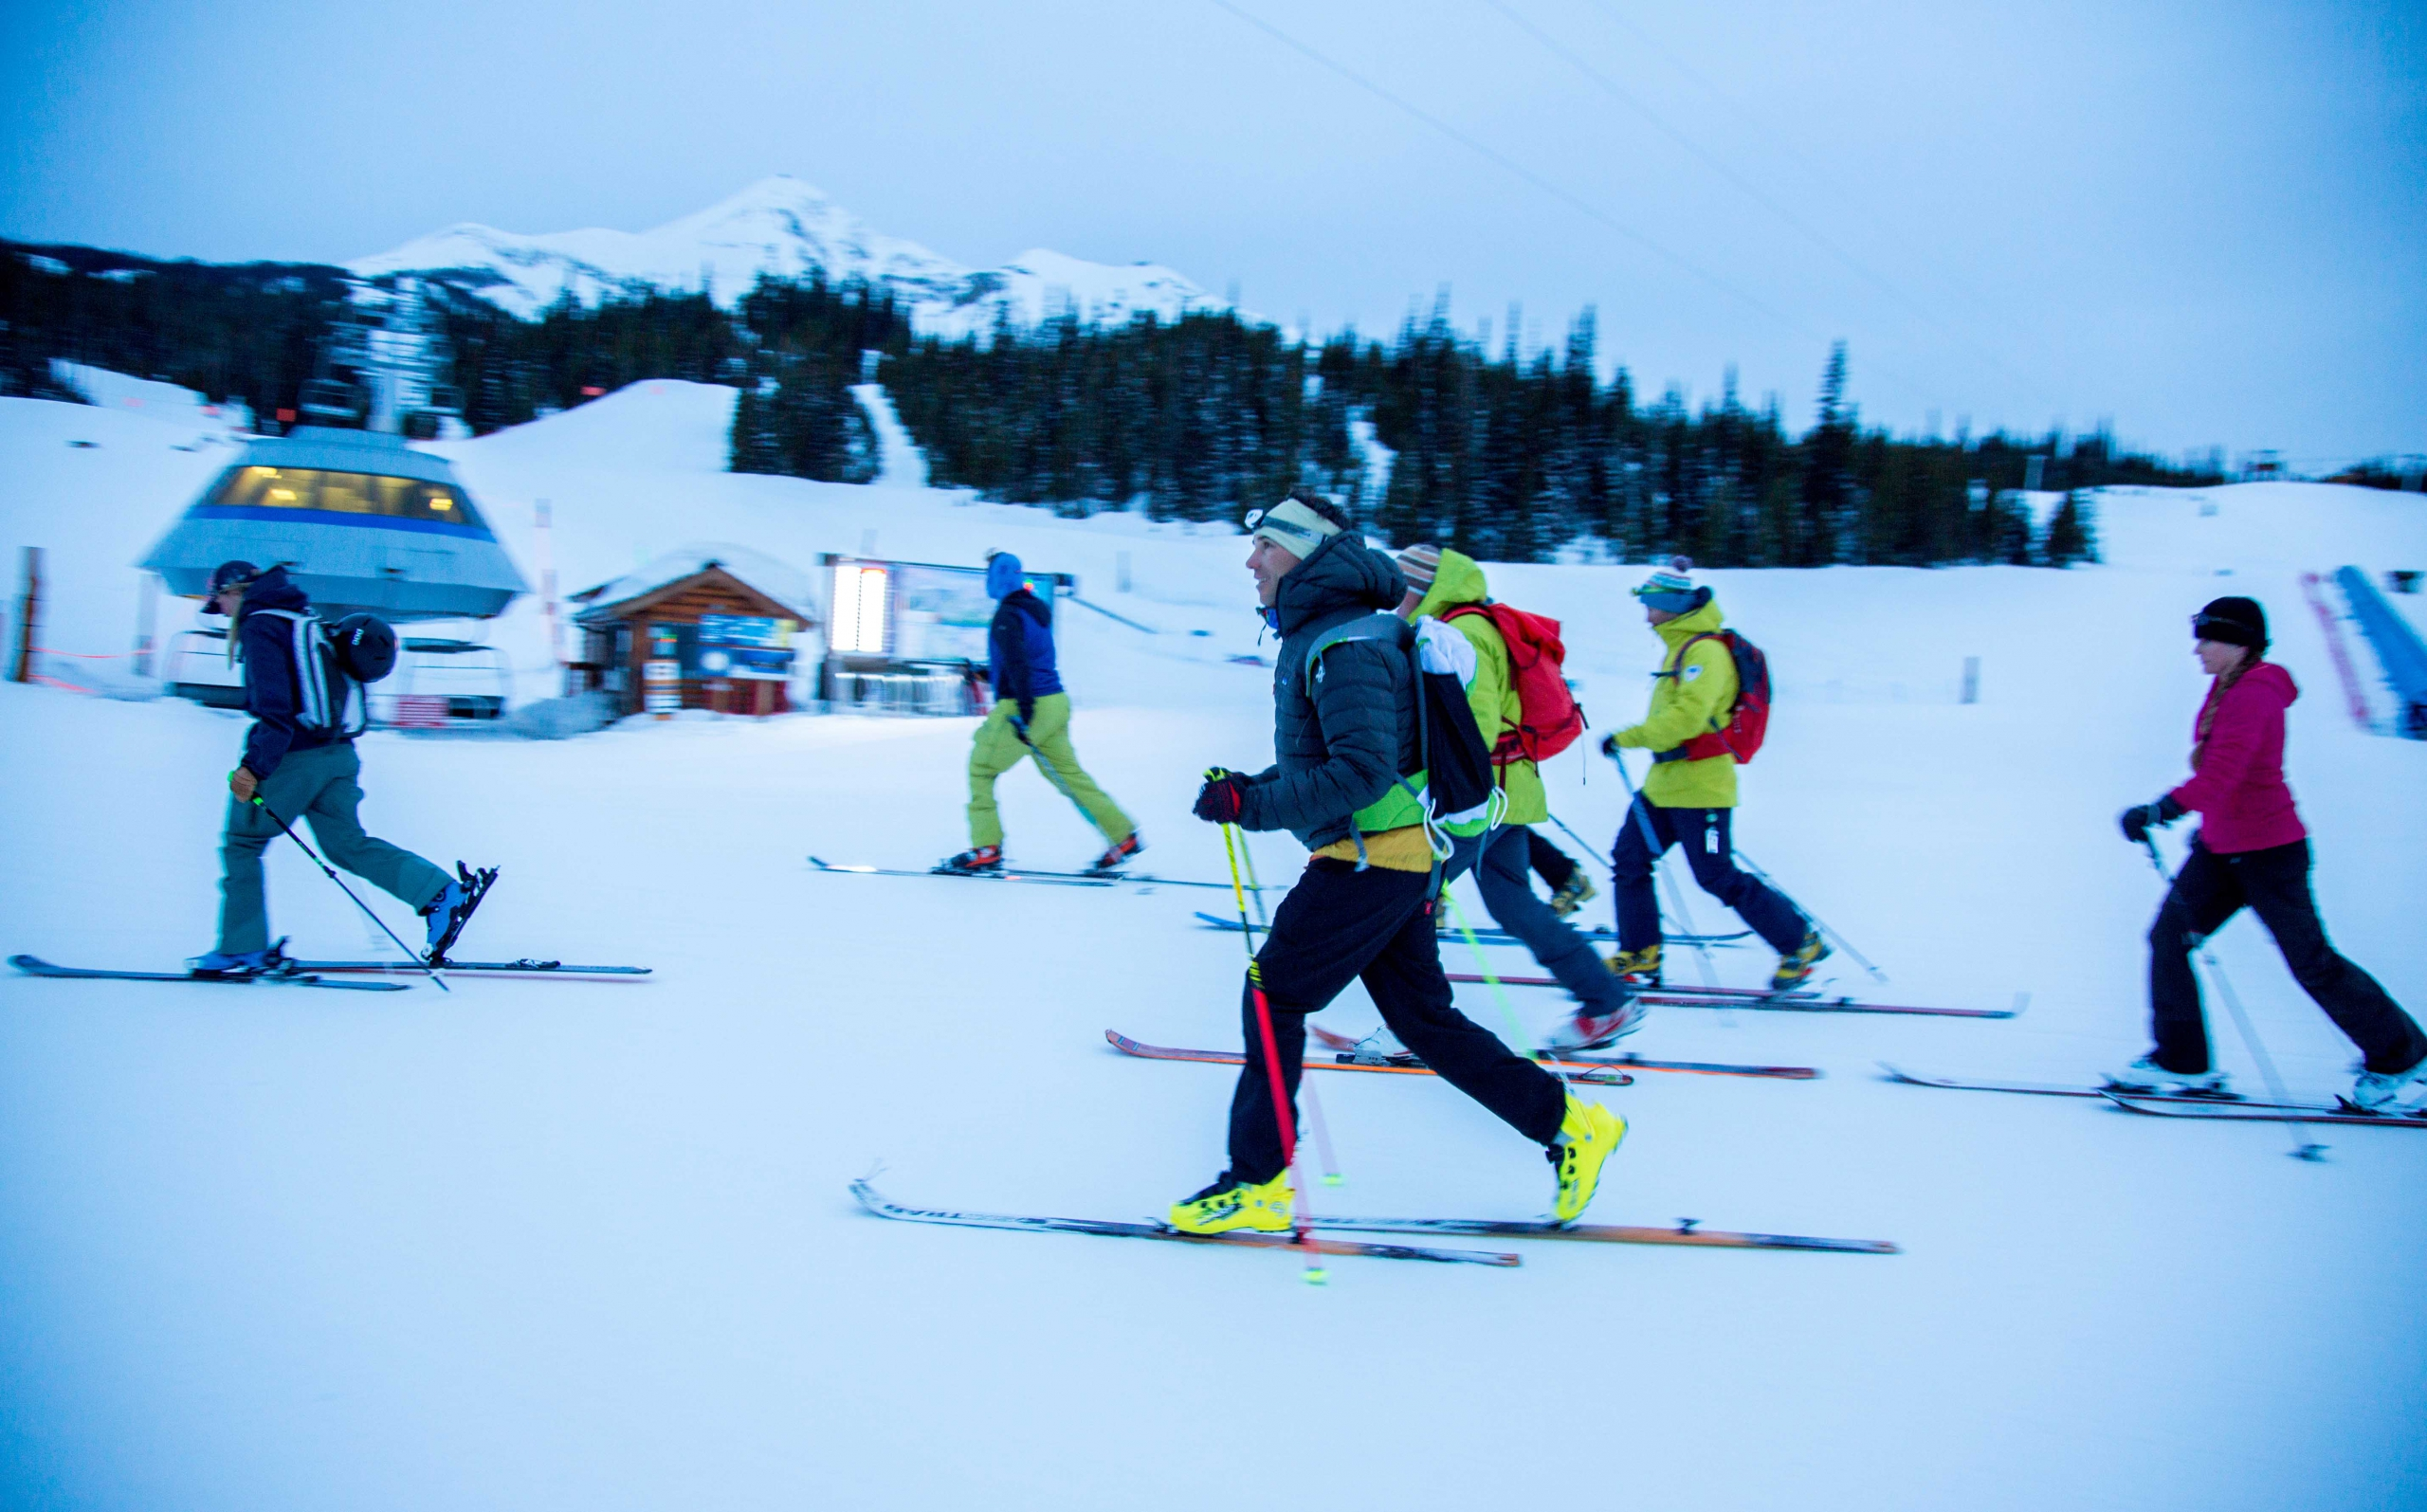 PSIA-AASI CEO Nick Herrin skins up a slope with a group of skiers